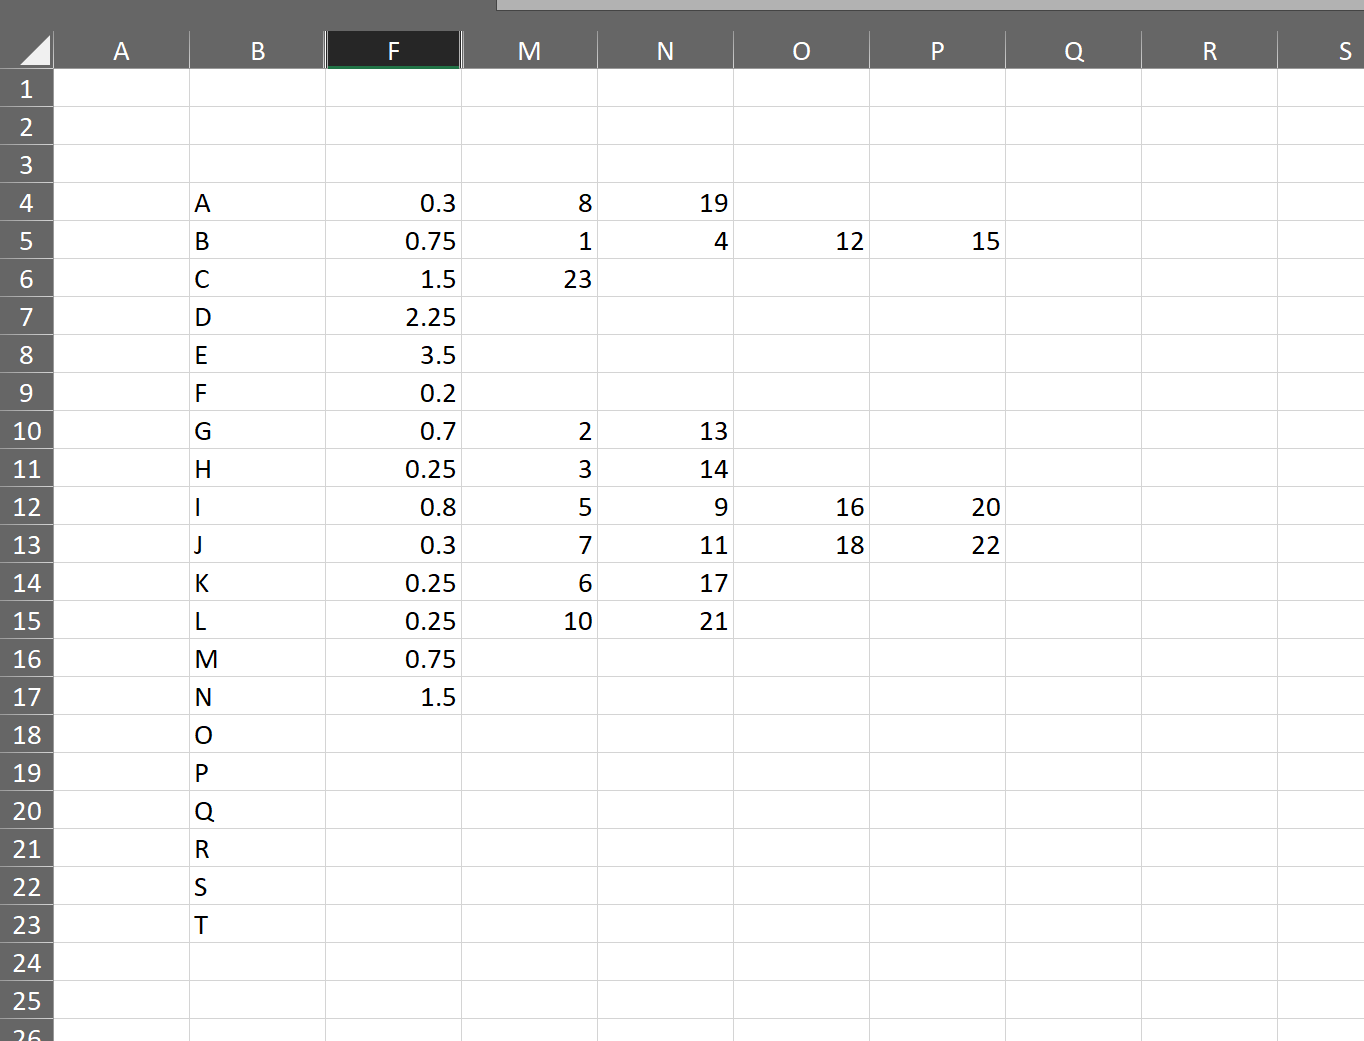 Excel Vba Looping Through A Range To Copy Cells In